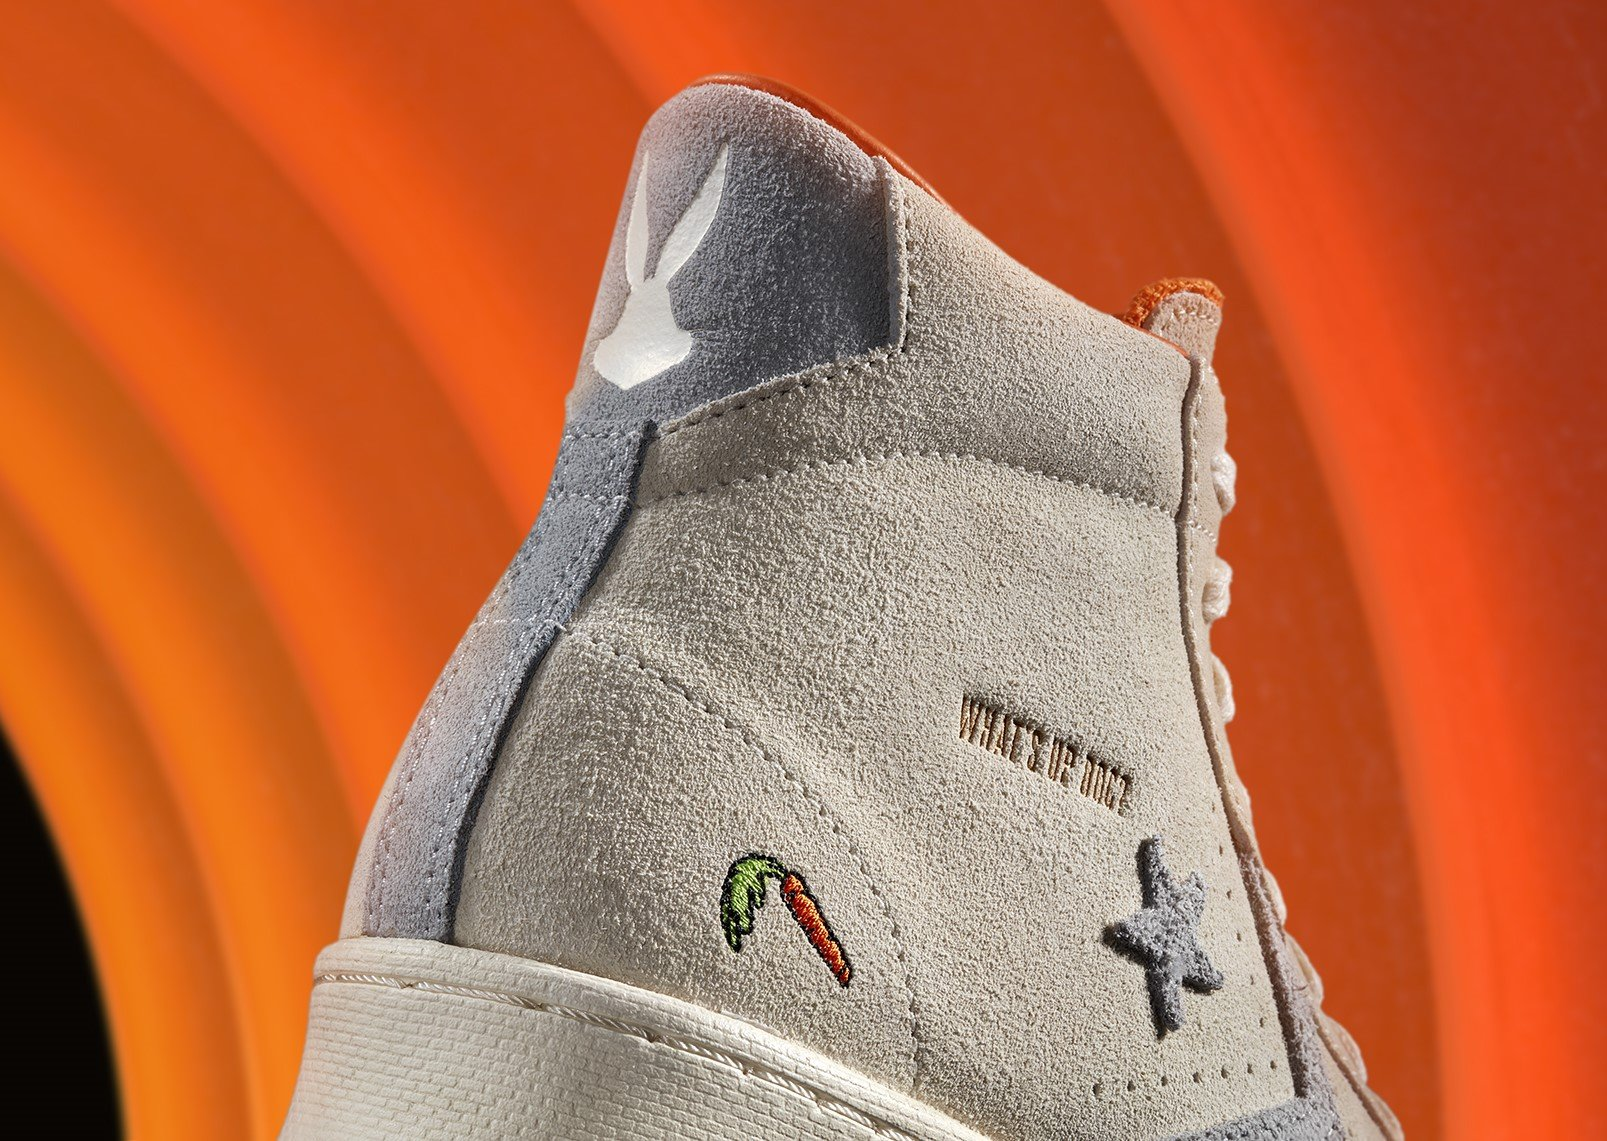 Converse celebrates Bugs Bunny's 80th anniversary with a shoe collection 19